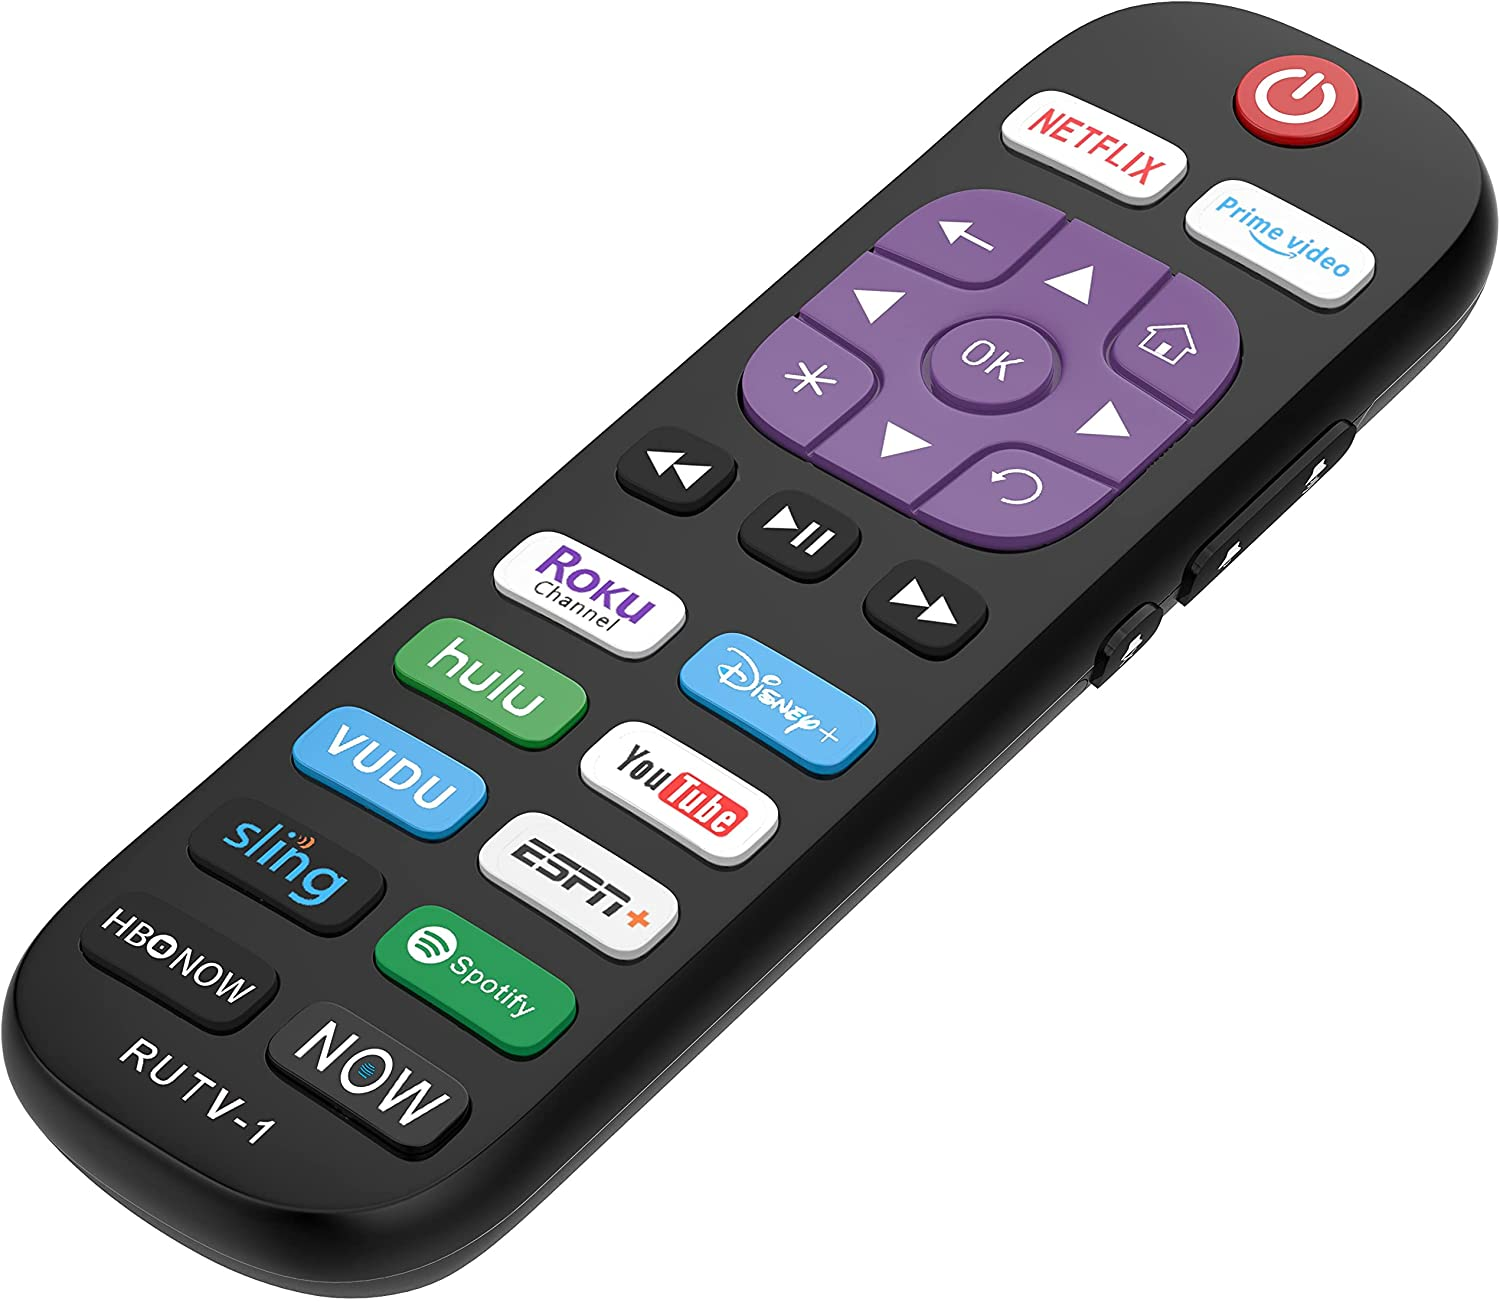 Replacement Remote Control for All Roku TV Brands [Hisense/TCL/Sharp/Insignia/ONN/Sanyo/LG/Hitachi/Element/Westinghouse] w/ 12 Shortcut Keys [NOT for Roku Stick]